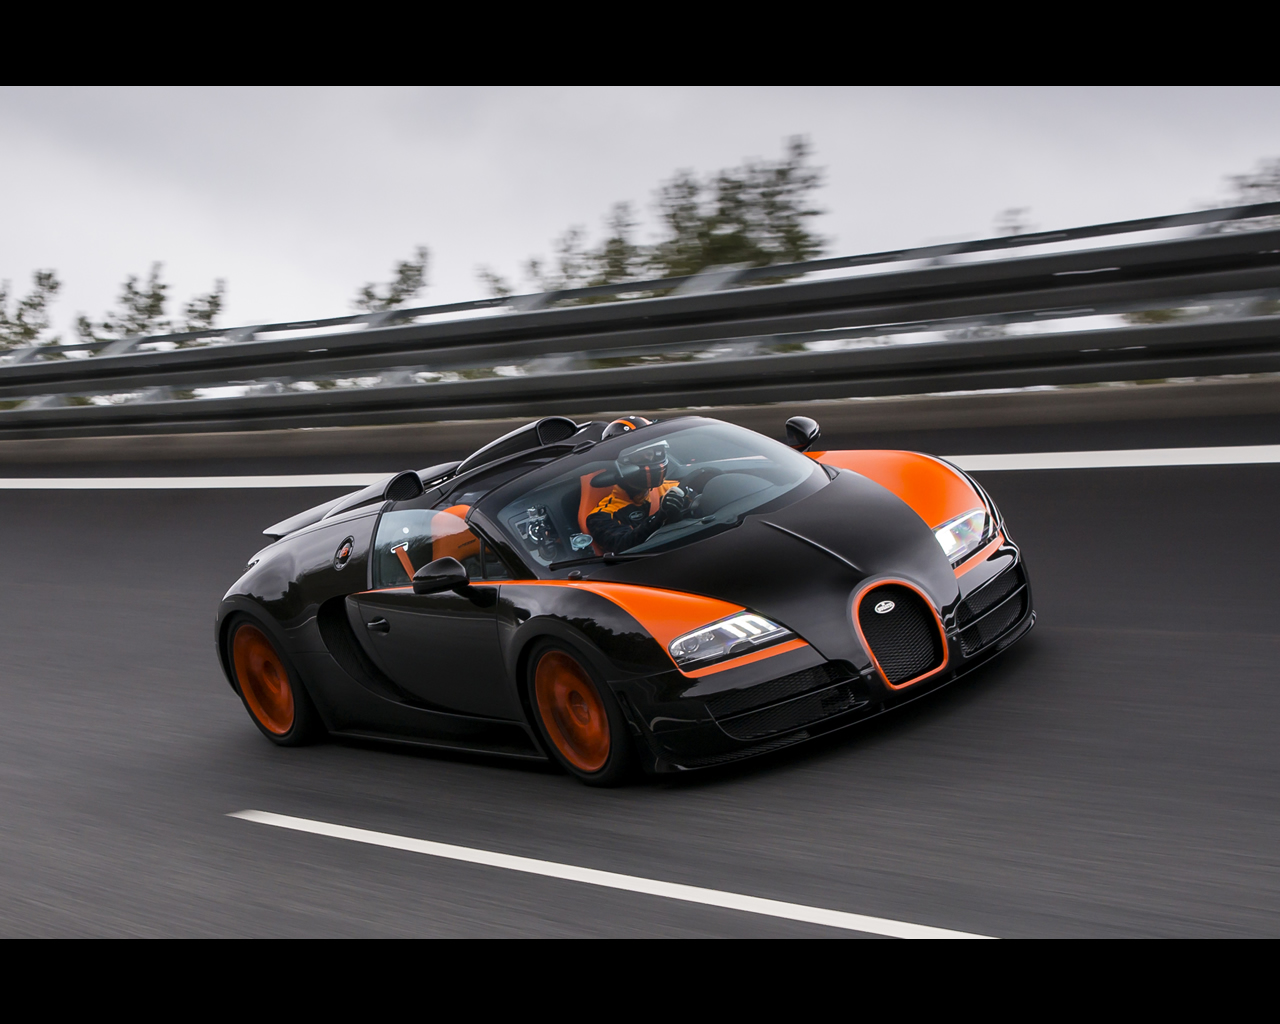 bugatti veyron grand sport vitesse nfs bugatti veyron grand sport vitesse mw nfs gen tr need. Black Bedroom Furniture Sets. Home Design Ideas